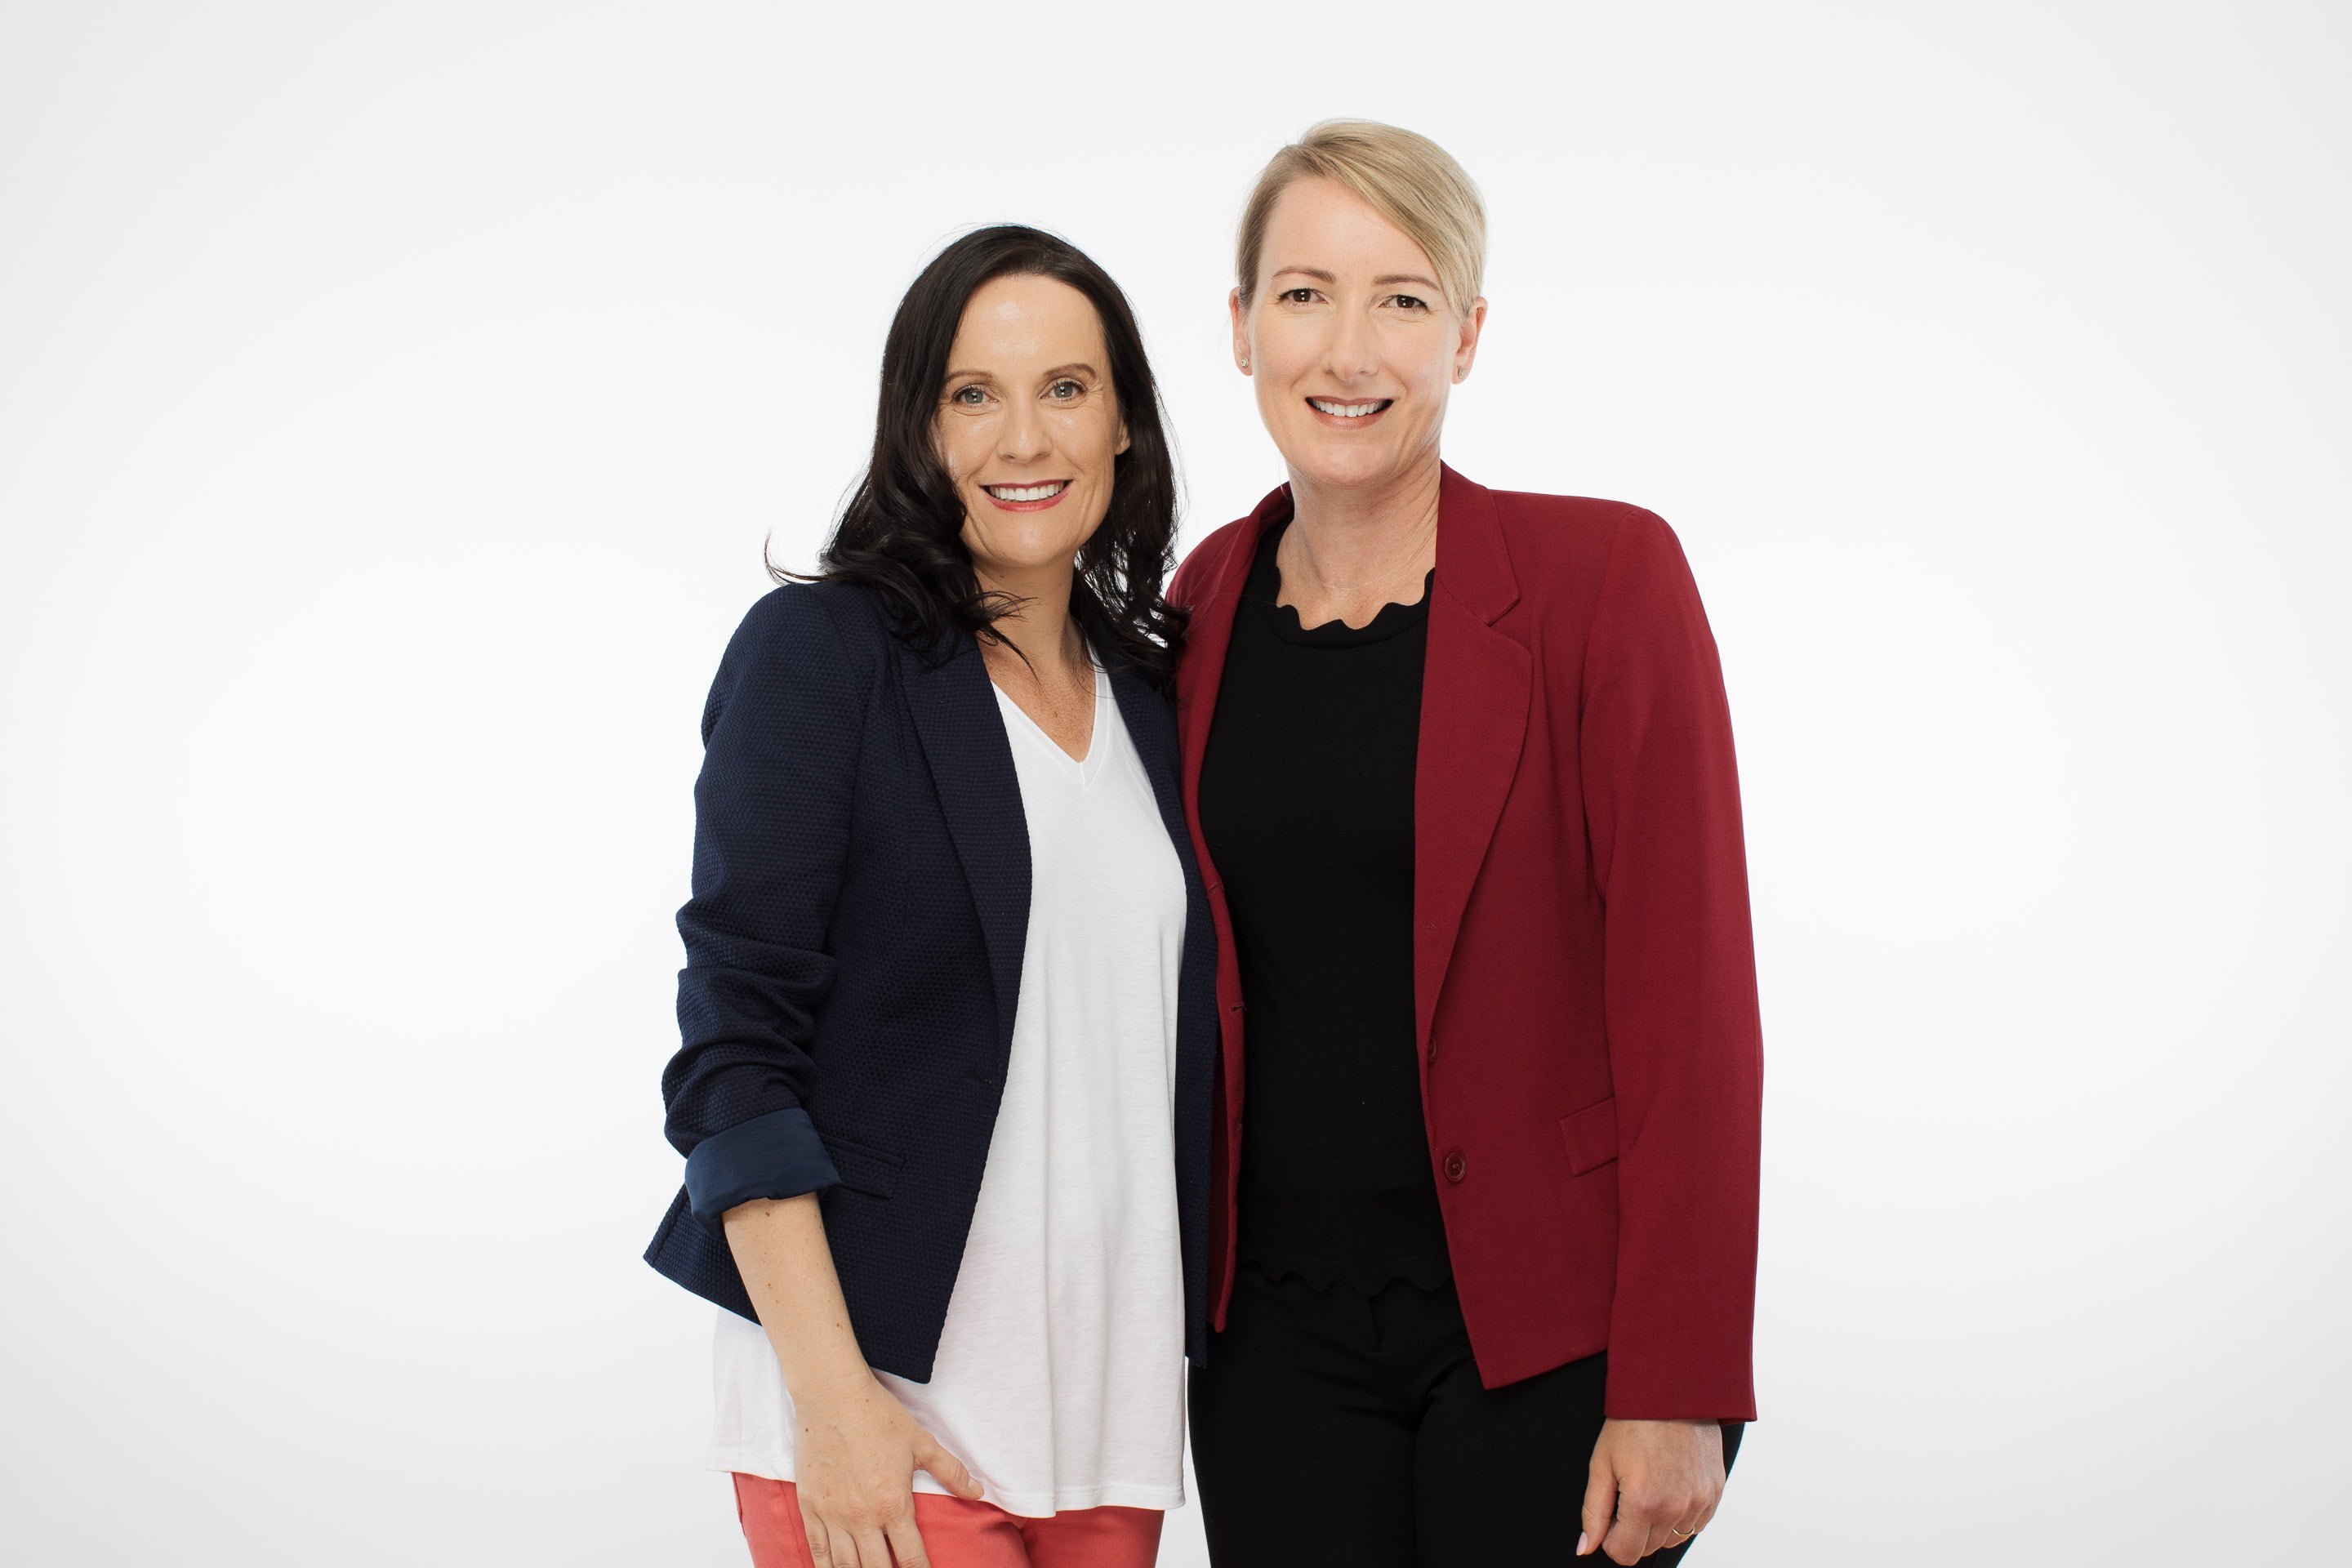 Headshot of two women against a white background